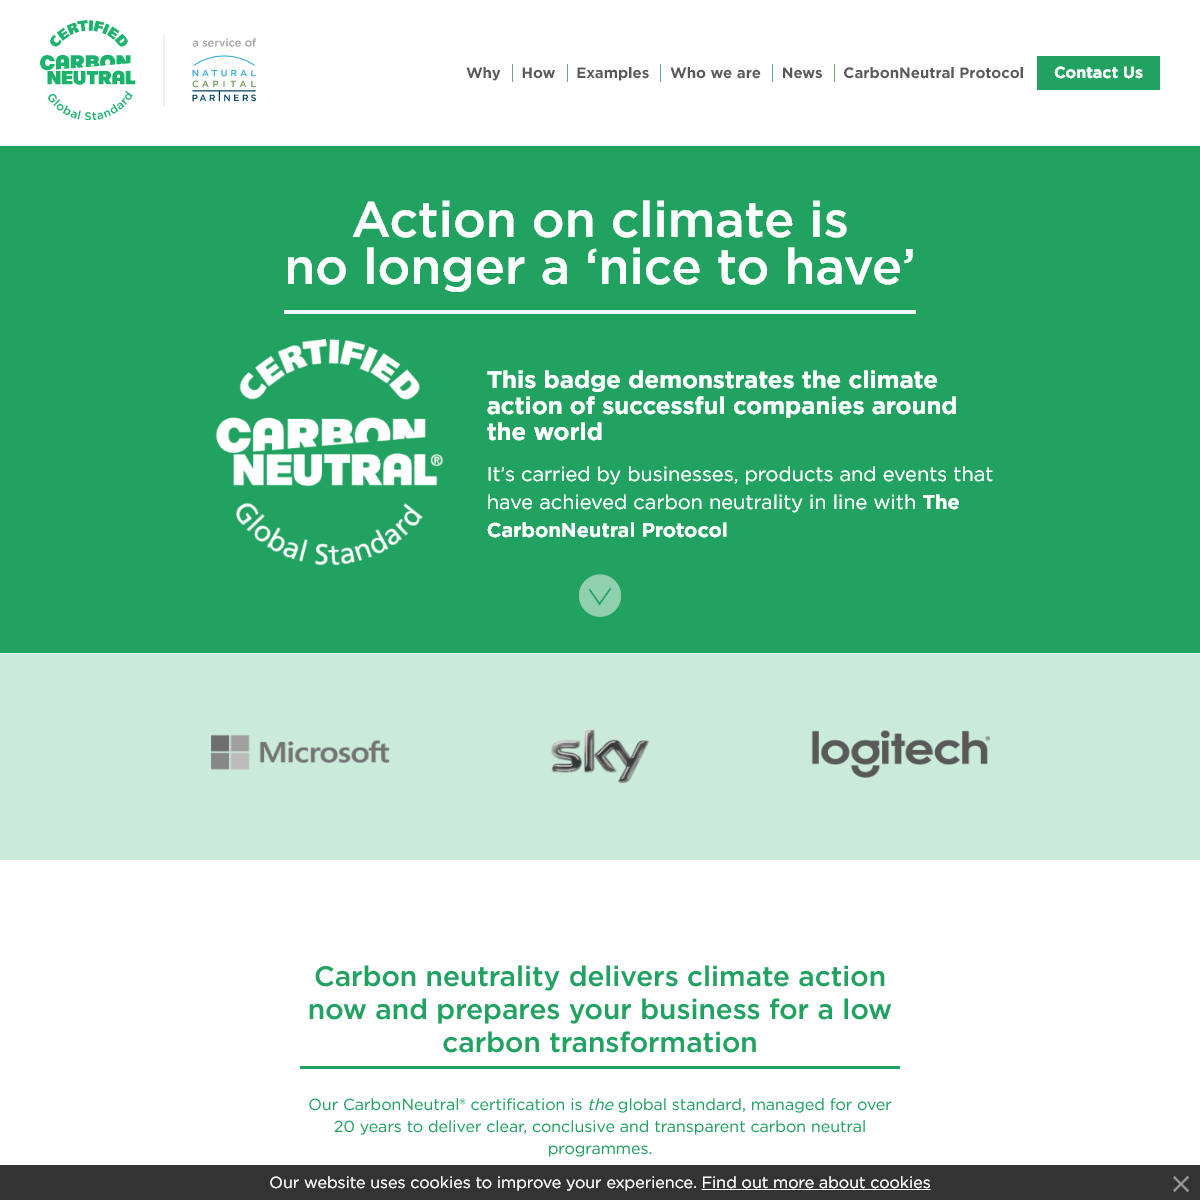 The leading solution for companies to be carbon neutral certified